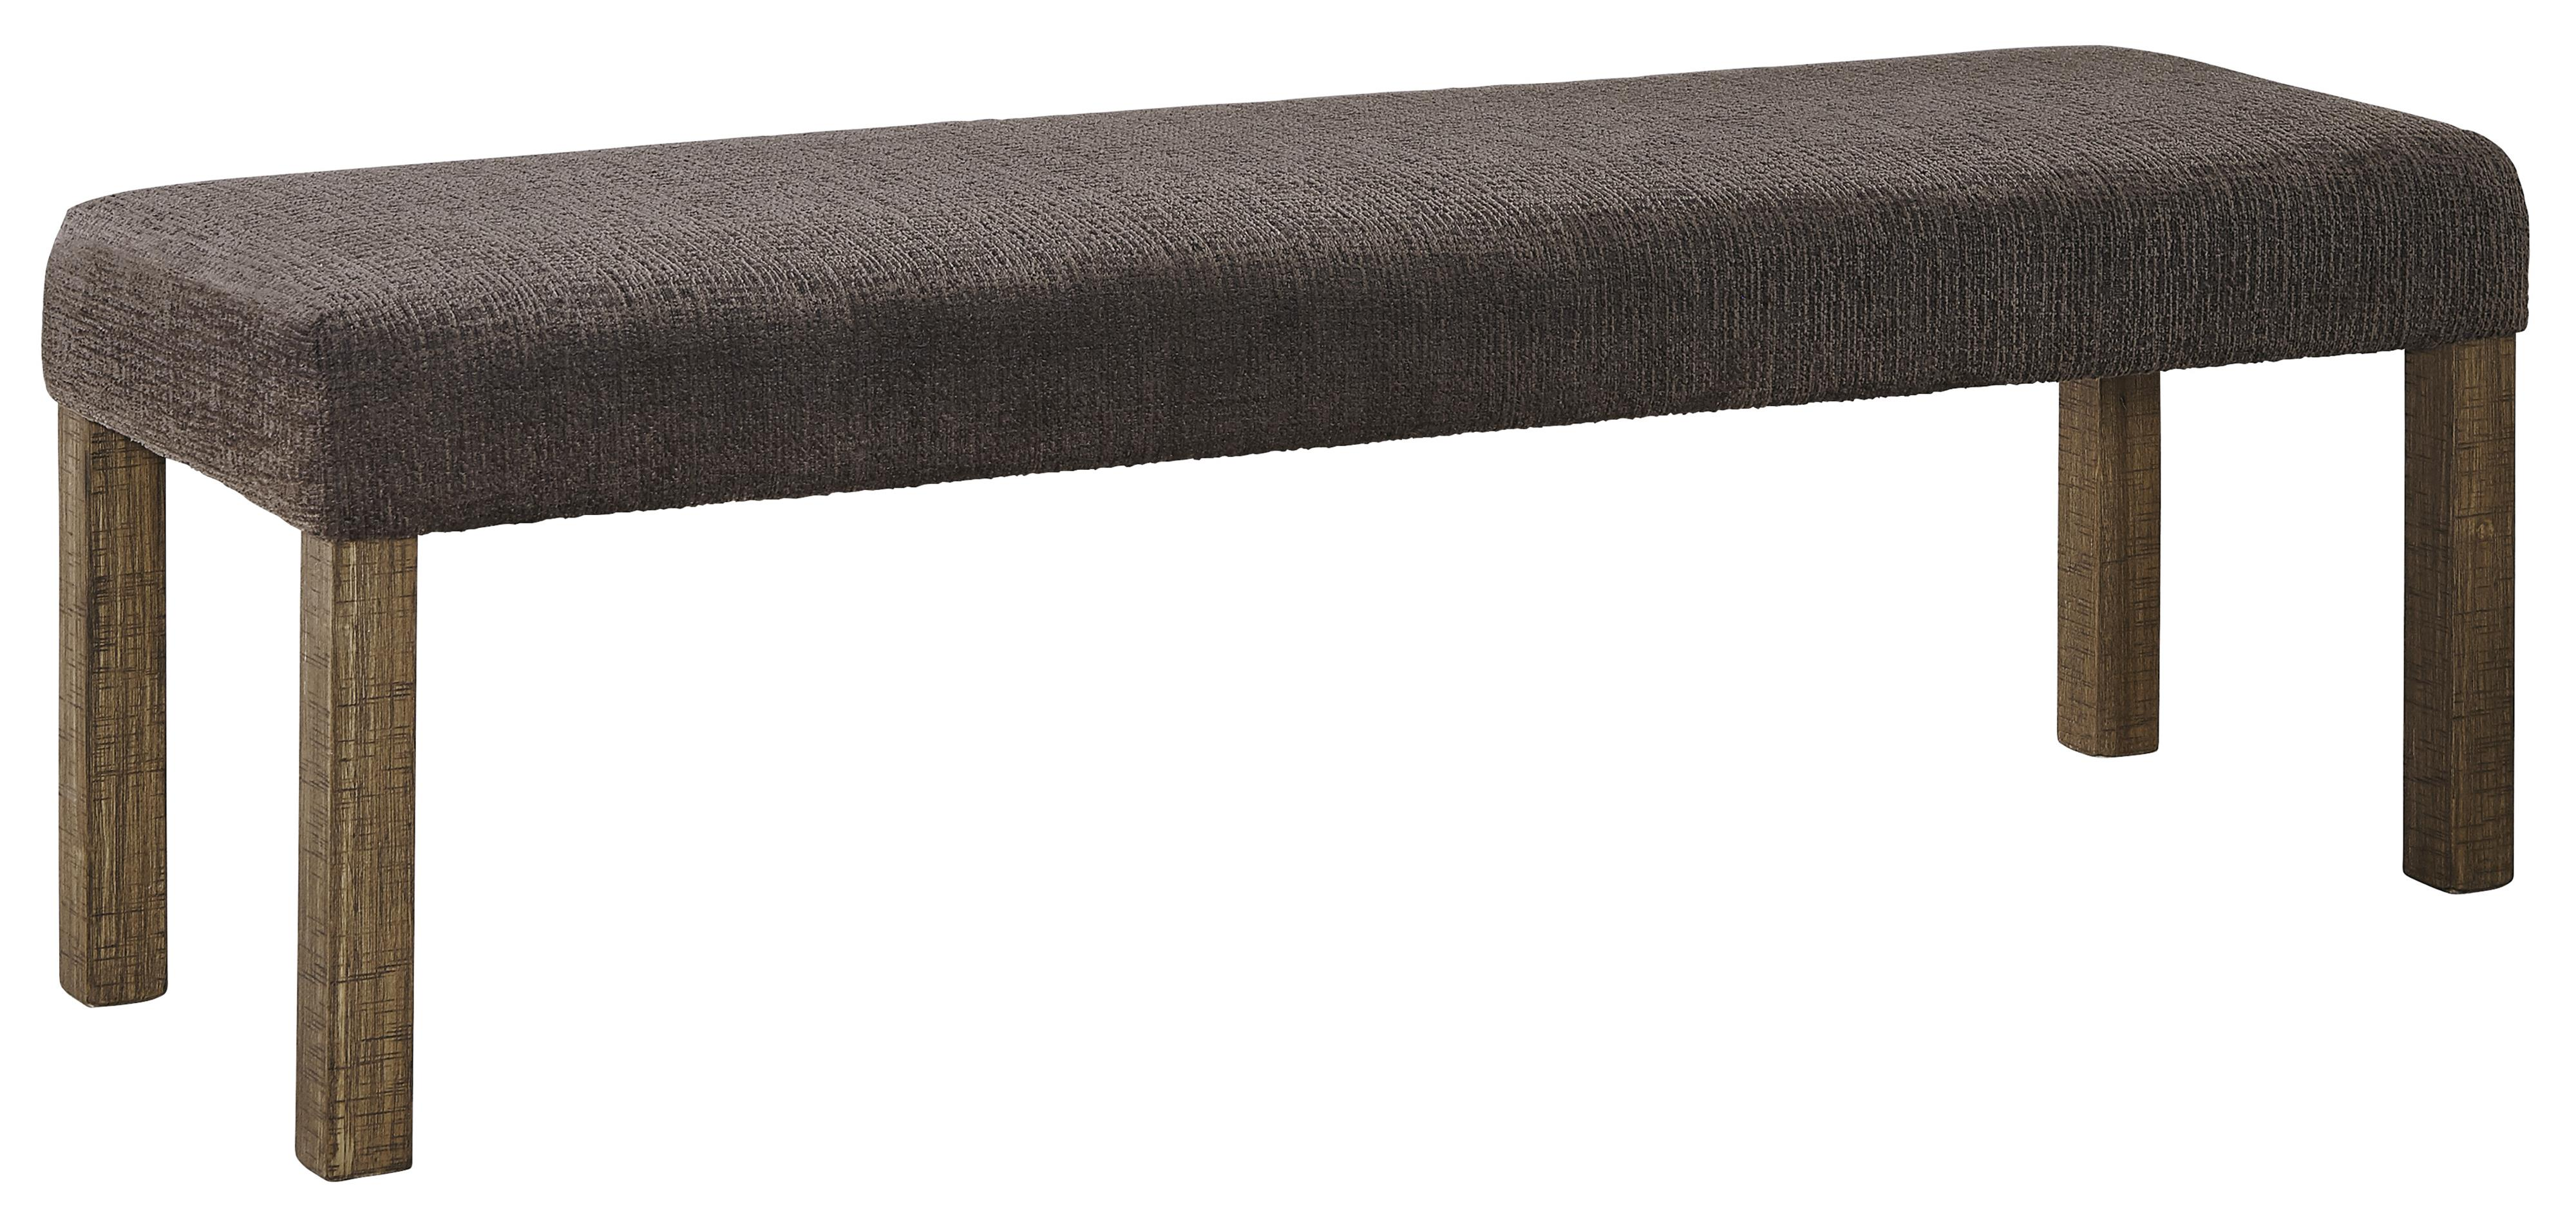 Signature Design by Ashley Tamilo Large Upholstered Dining Room Bench - Item Number: D714-00